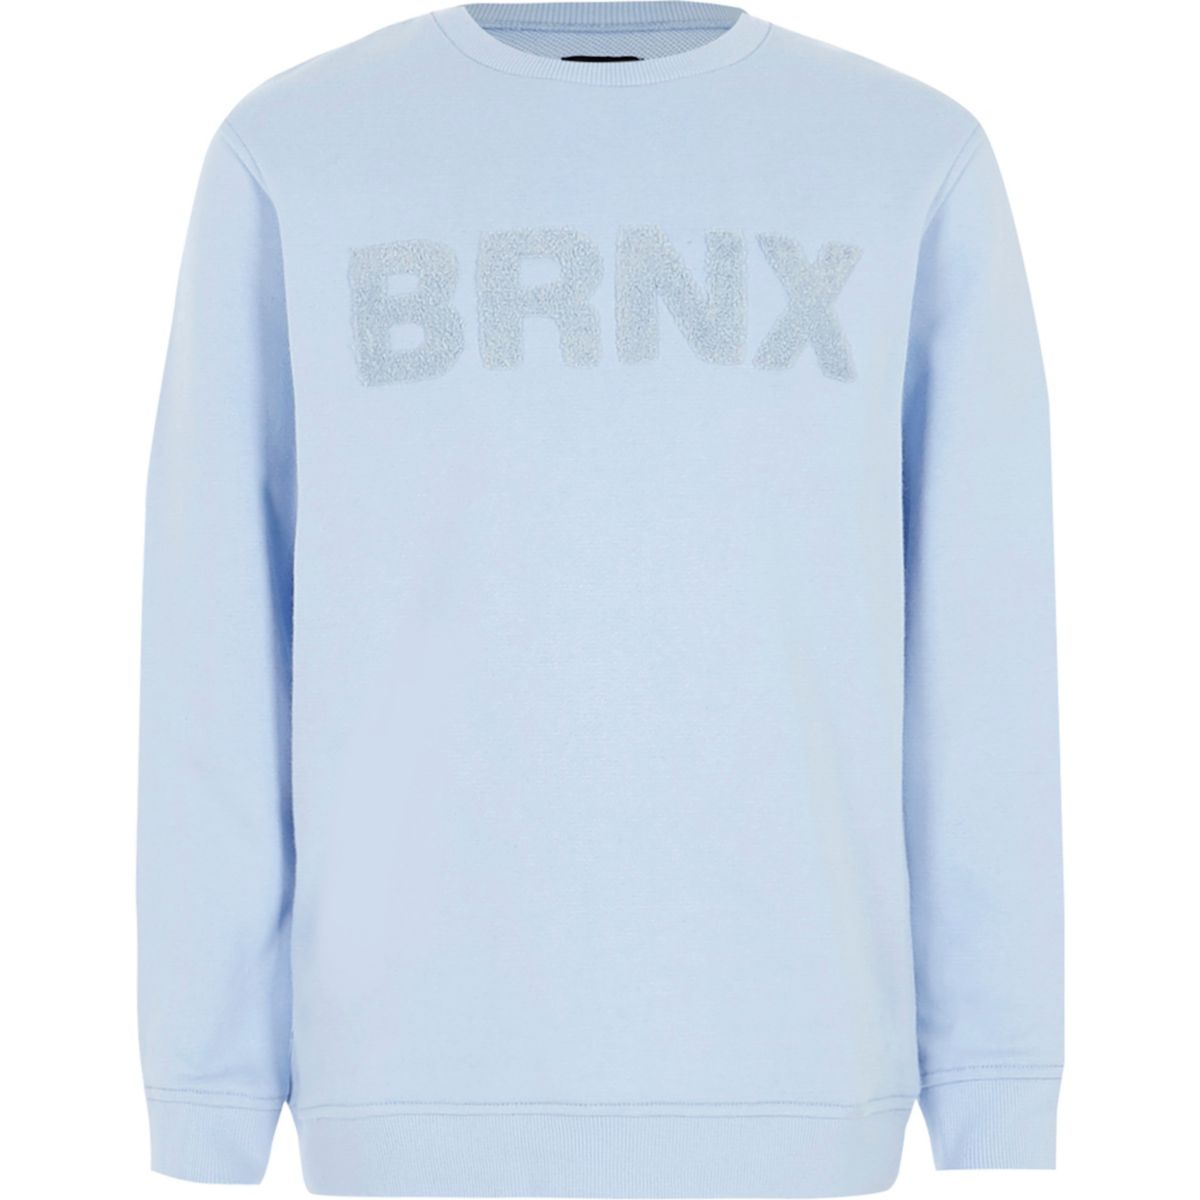 Boys light blue 'Brnx' felt sweatshirt